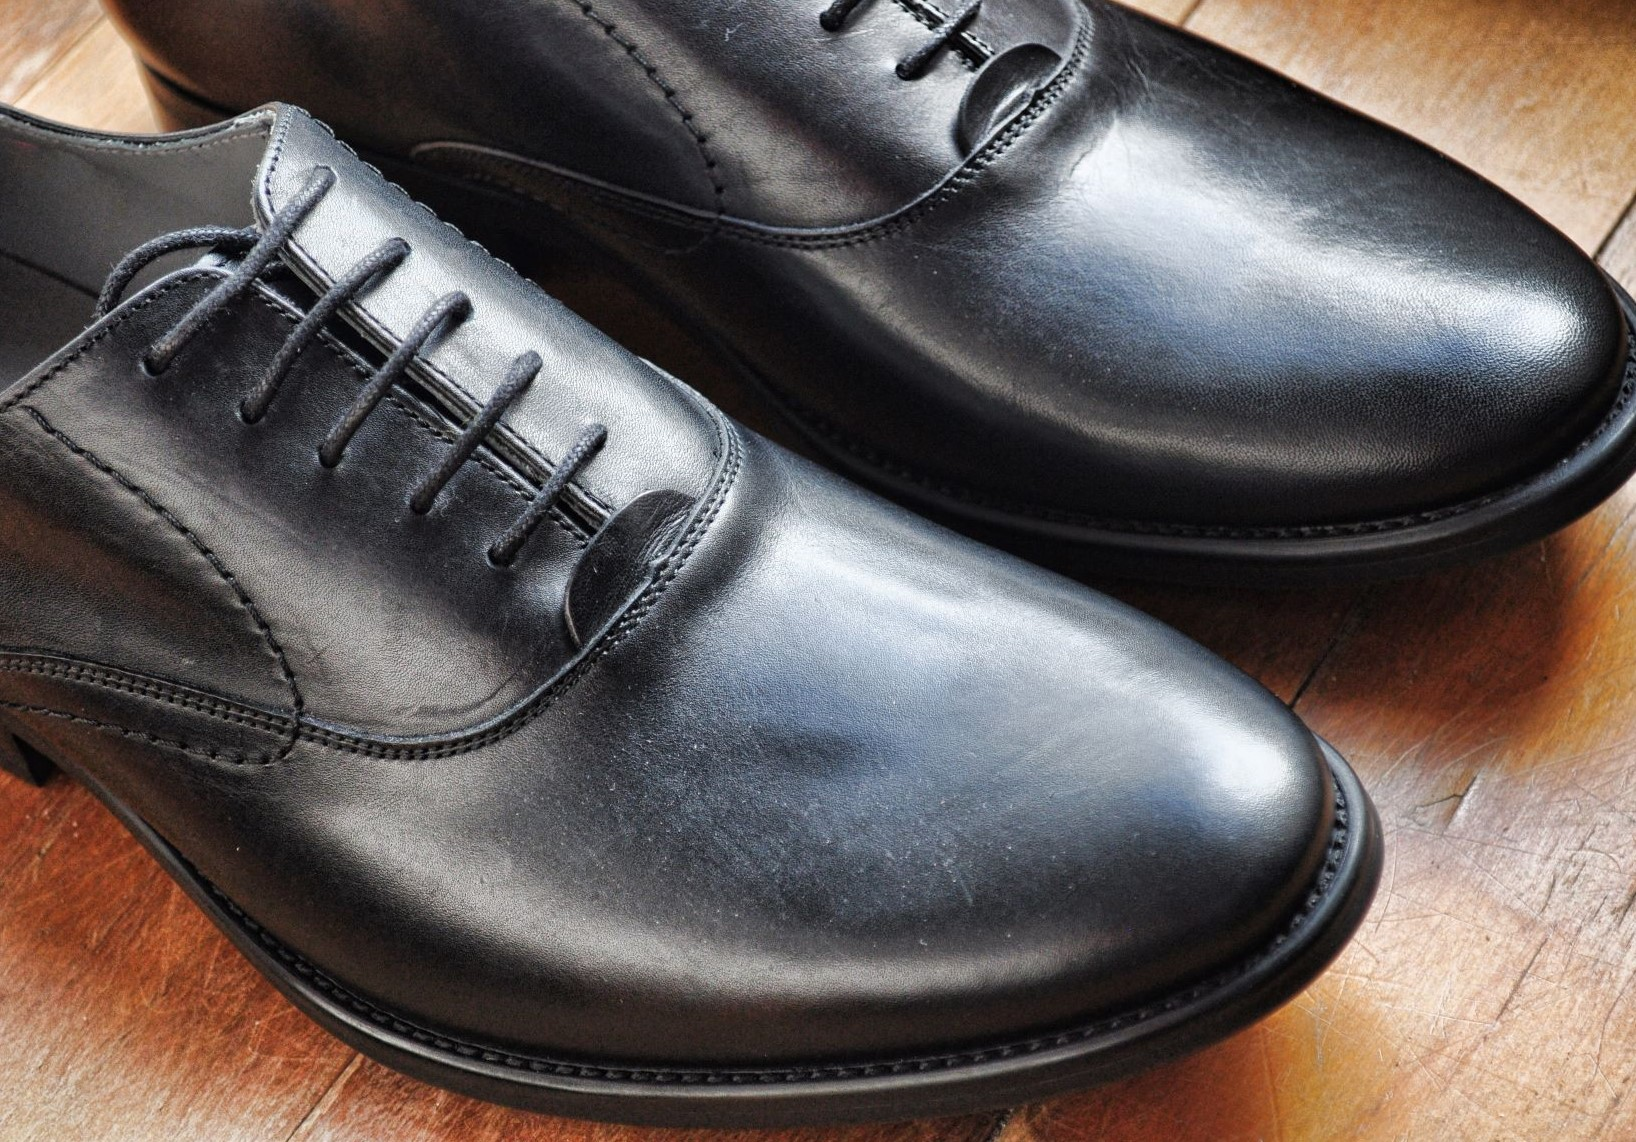 The Best Tuxedo Shoes - Black Leather Shoes